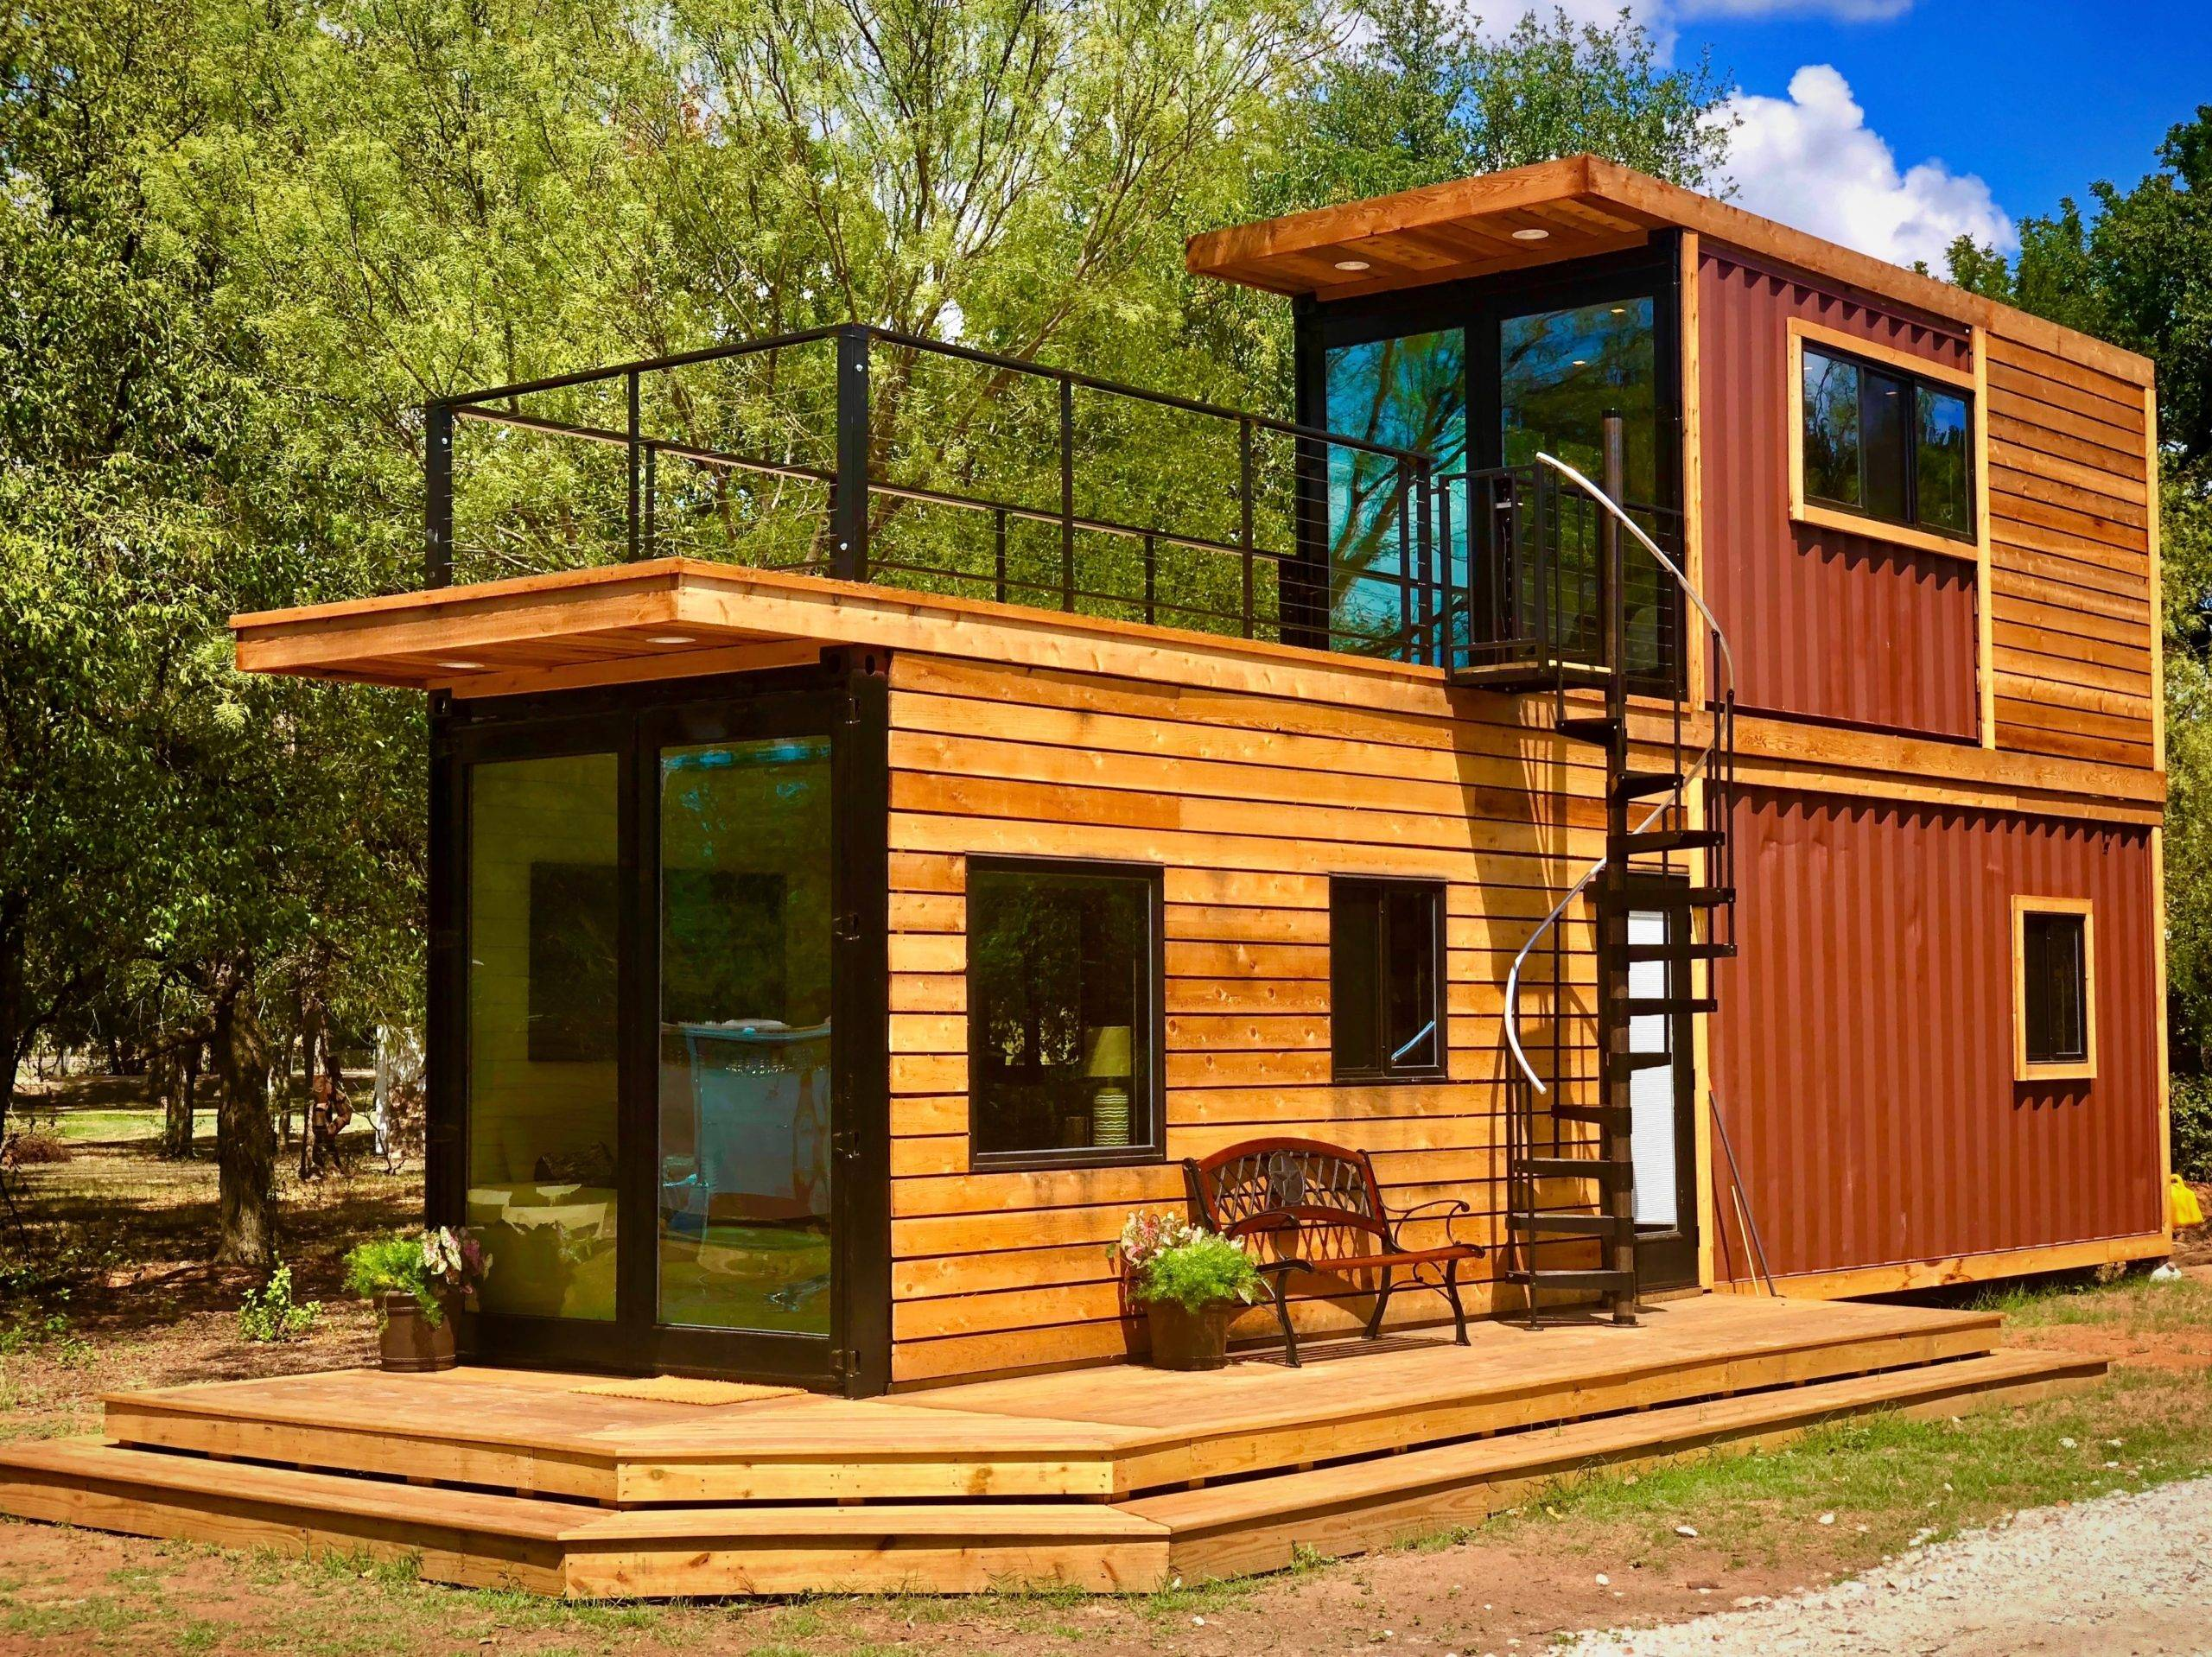 Two-story container house with spiral staircase